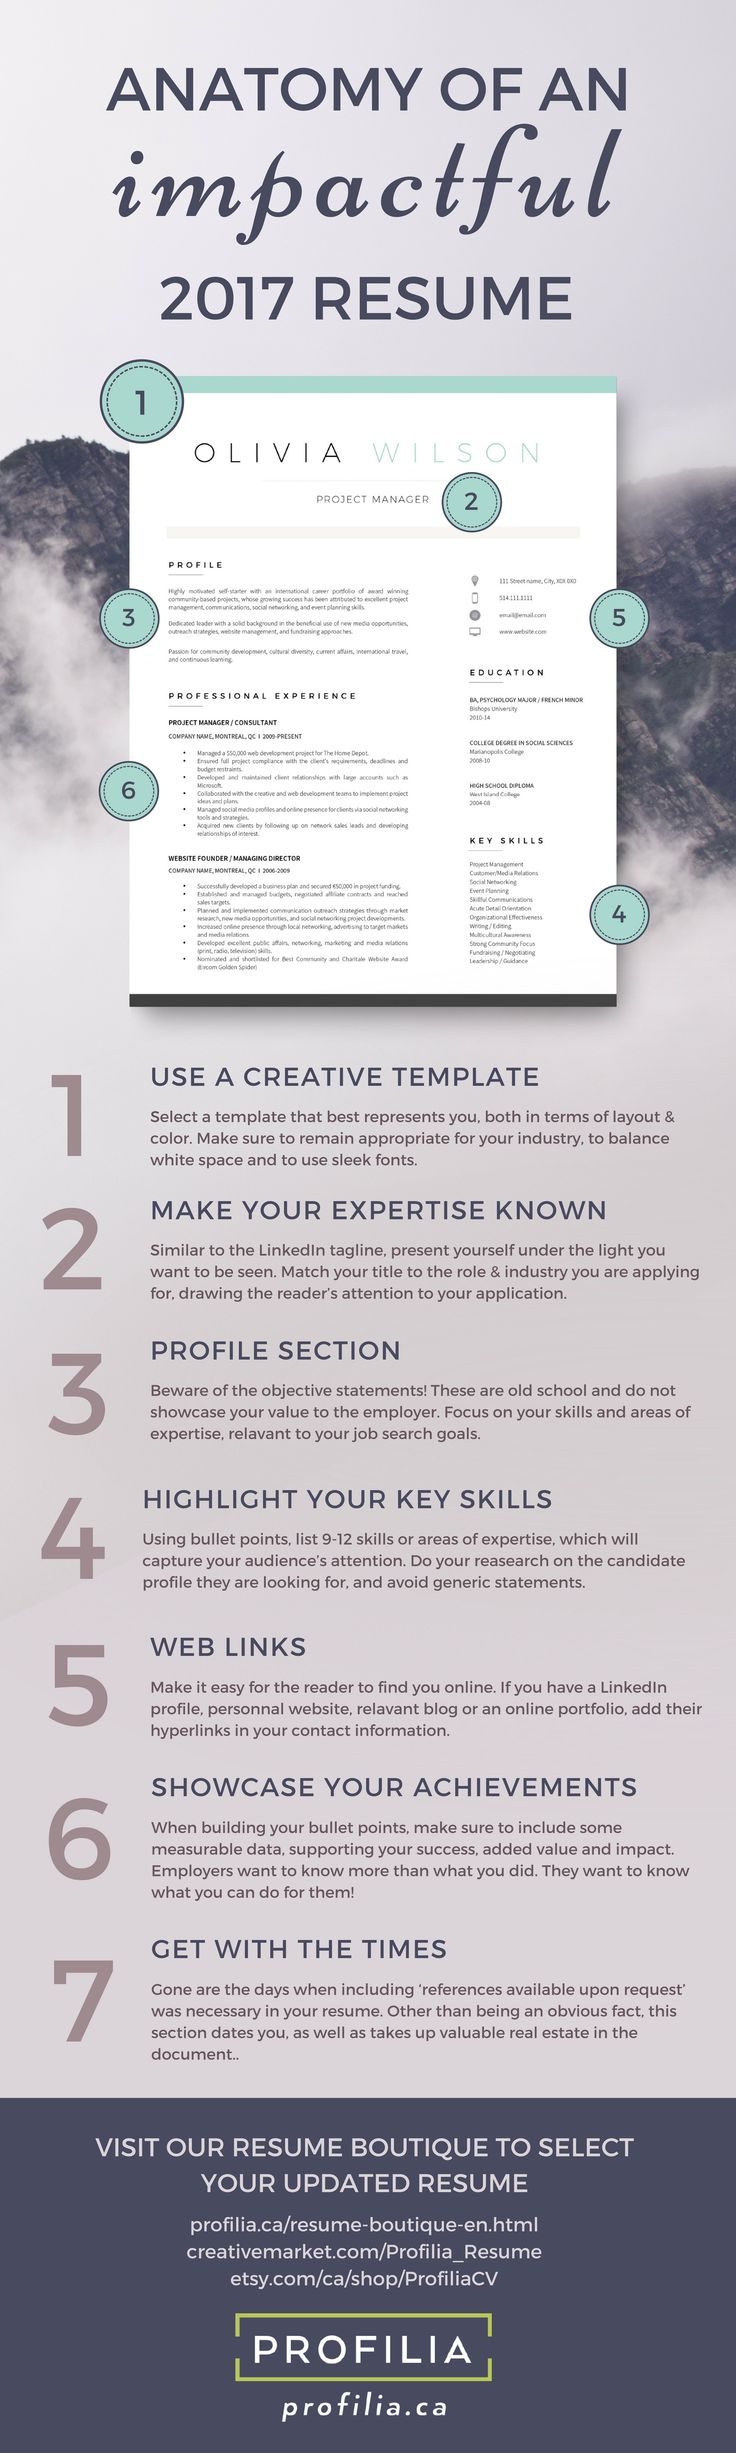 Word Resume u0026 Cover Letter Template 250